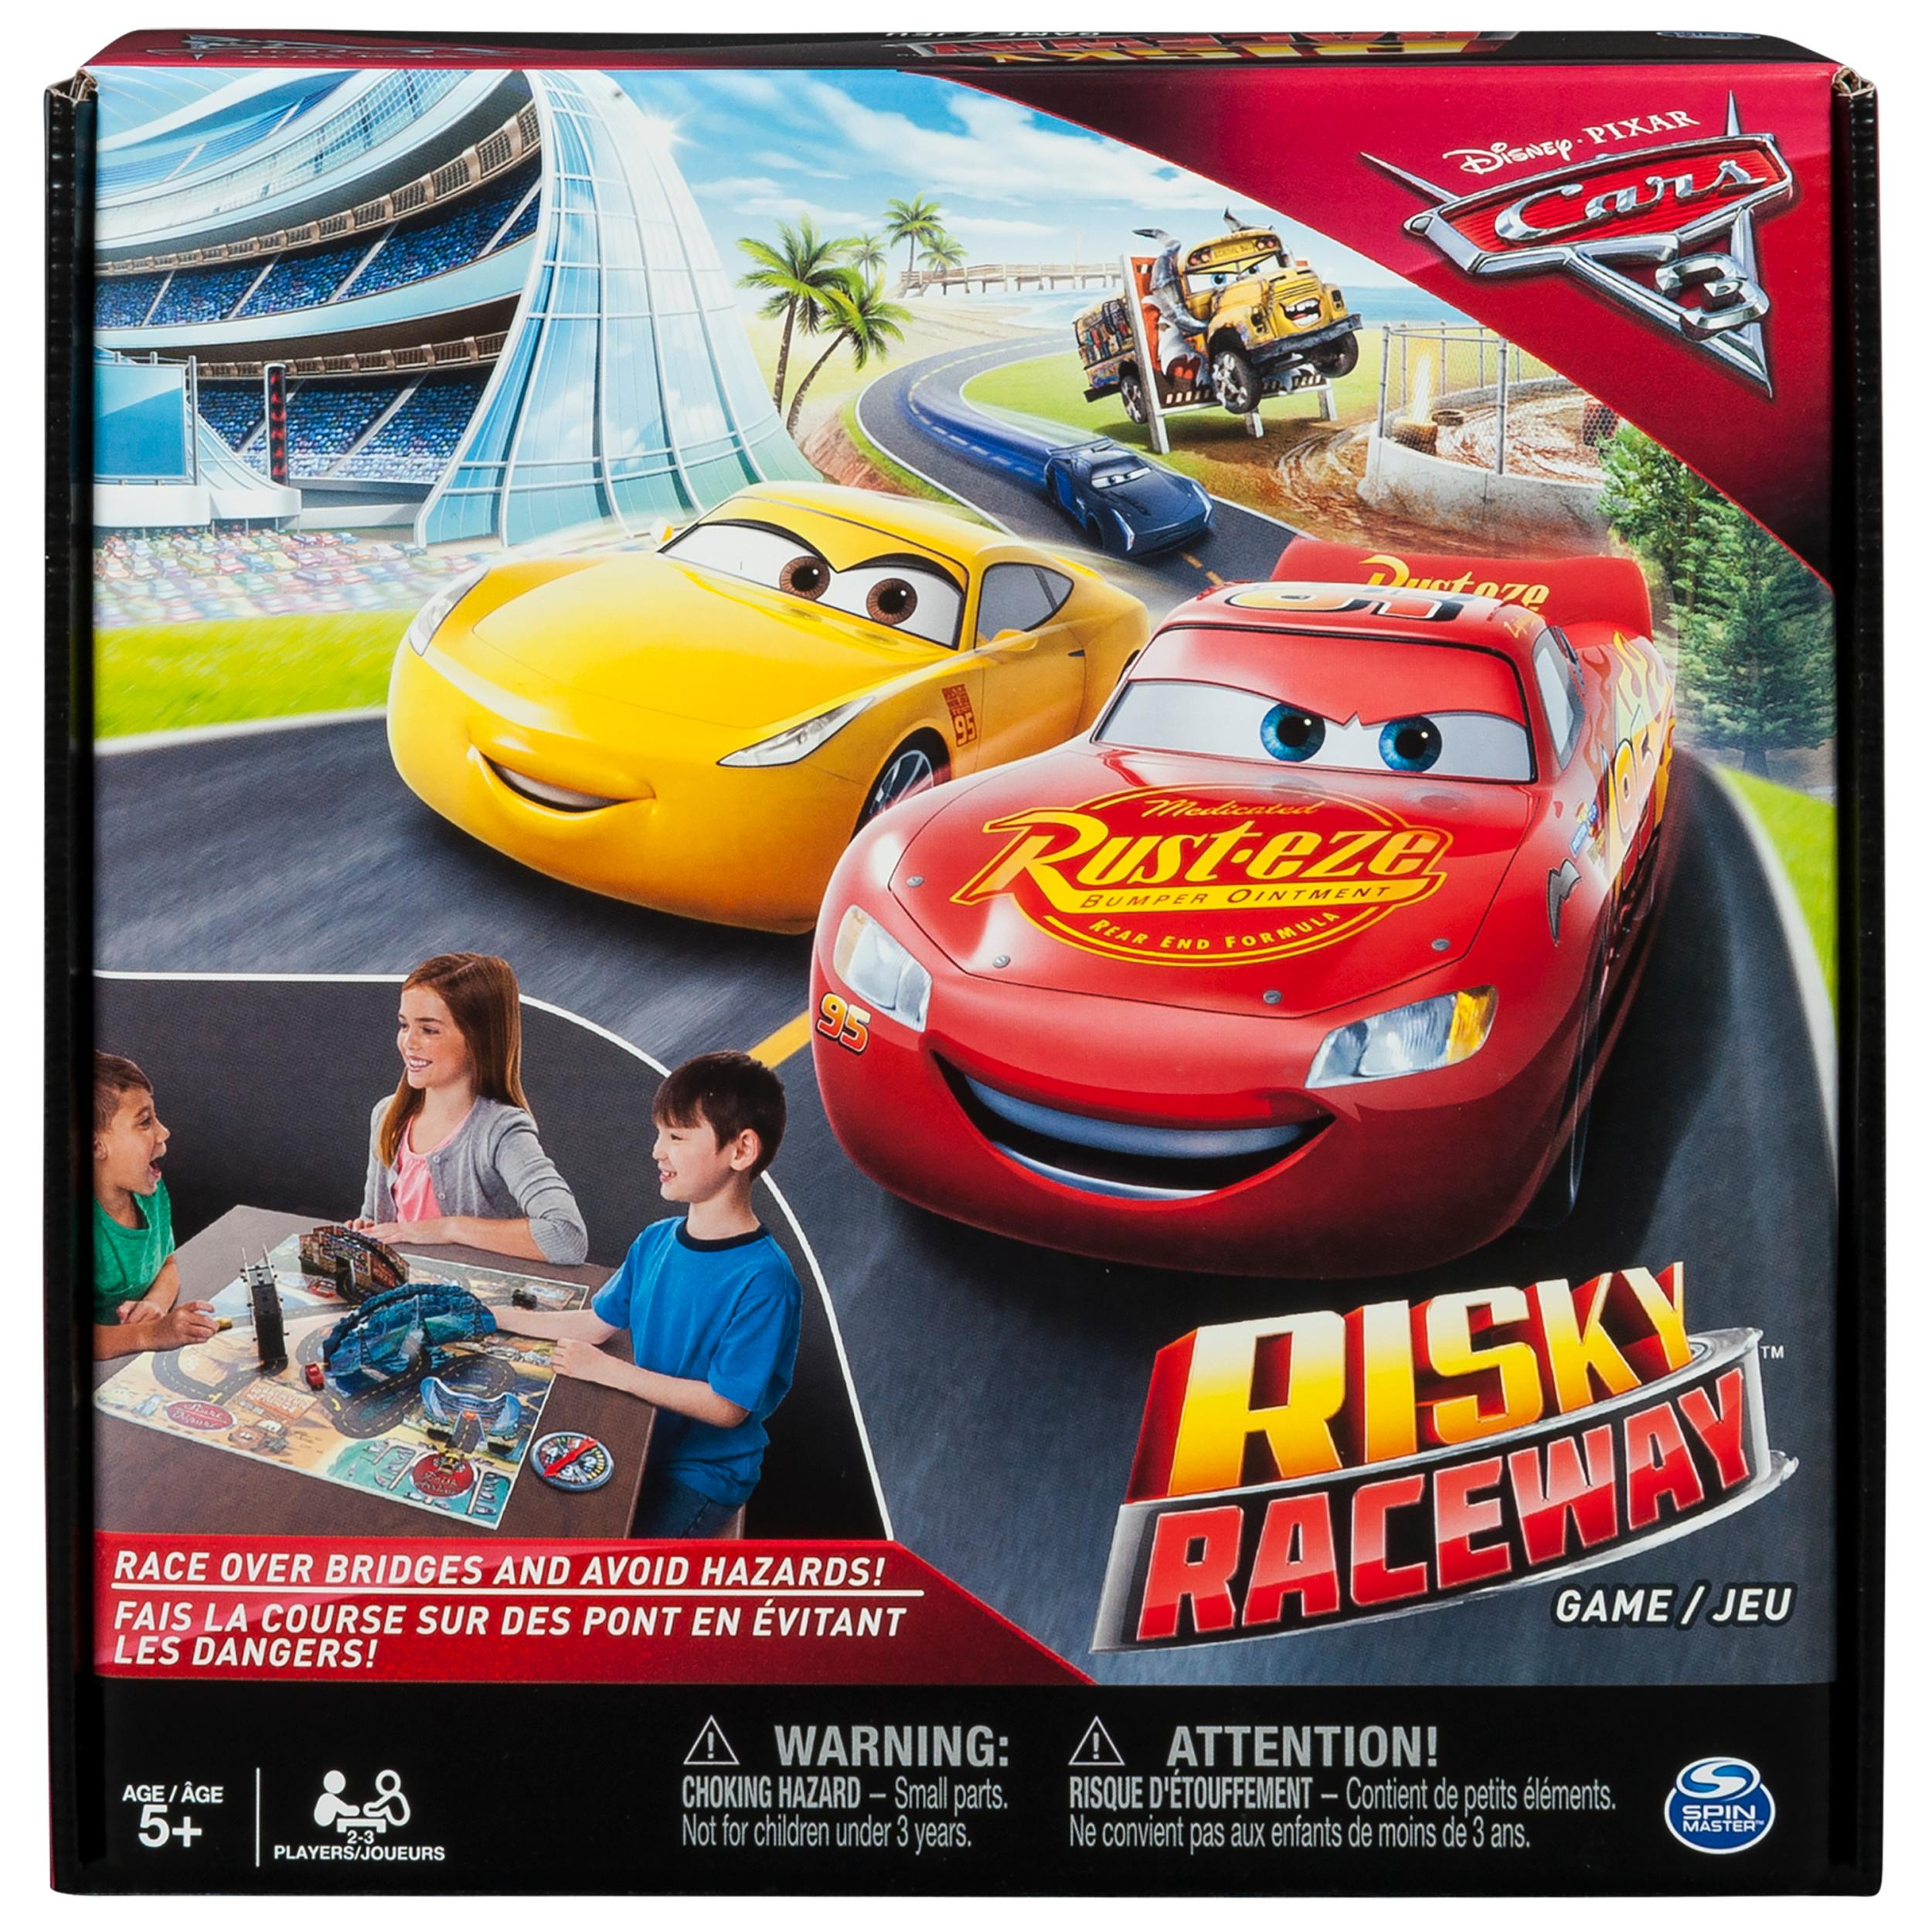 cars games game board master spin risky raceway toys disney pixar amazon monopoly race racing wooden ultimate gift guide track